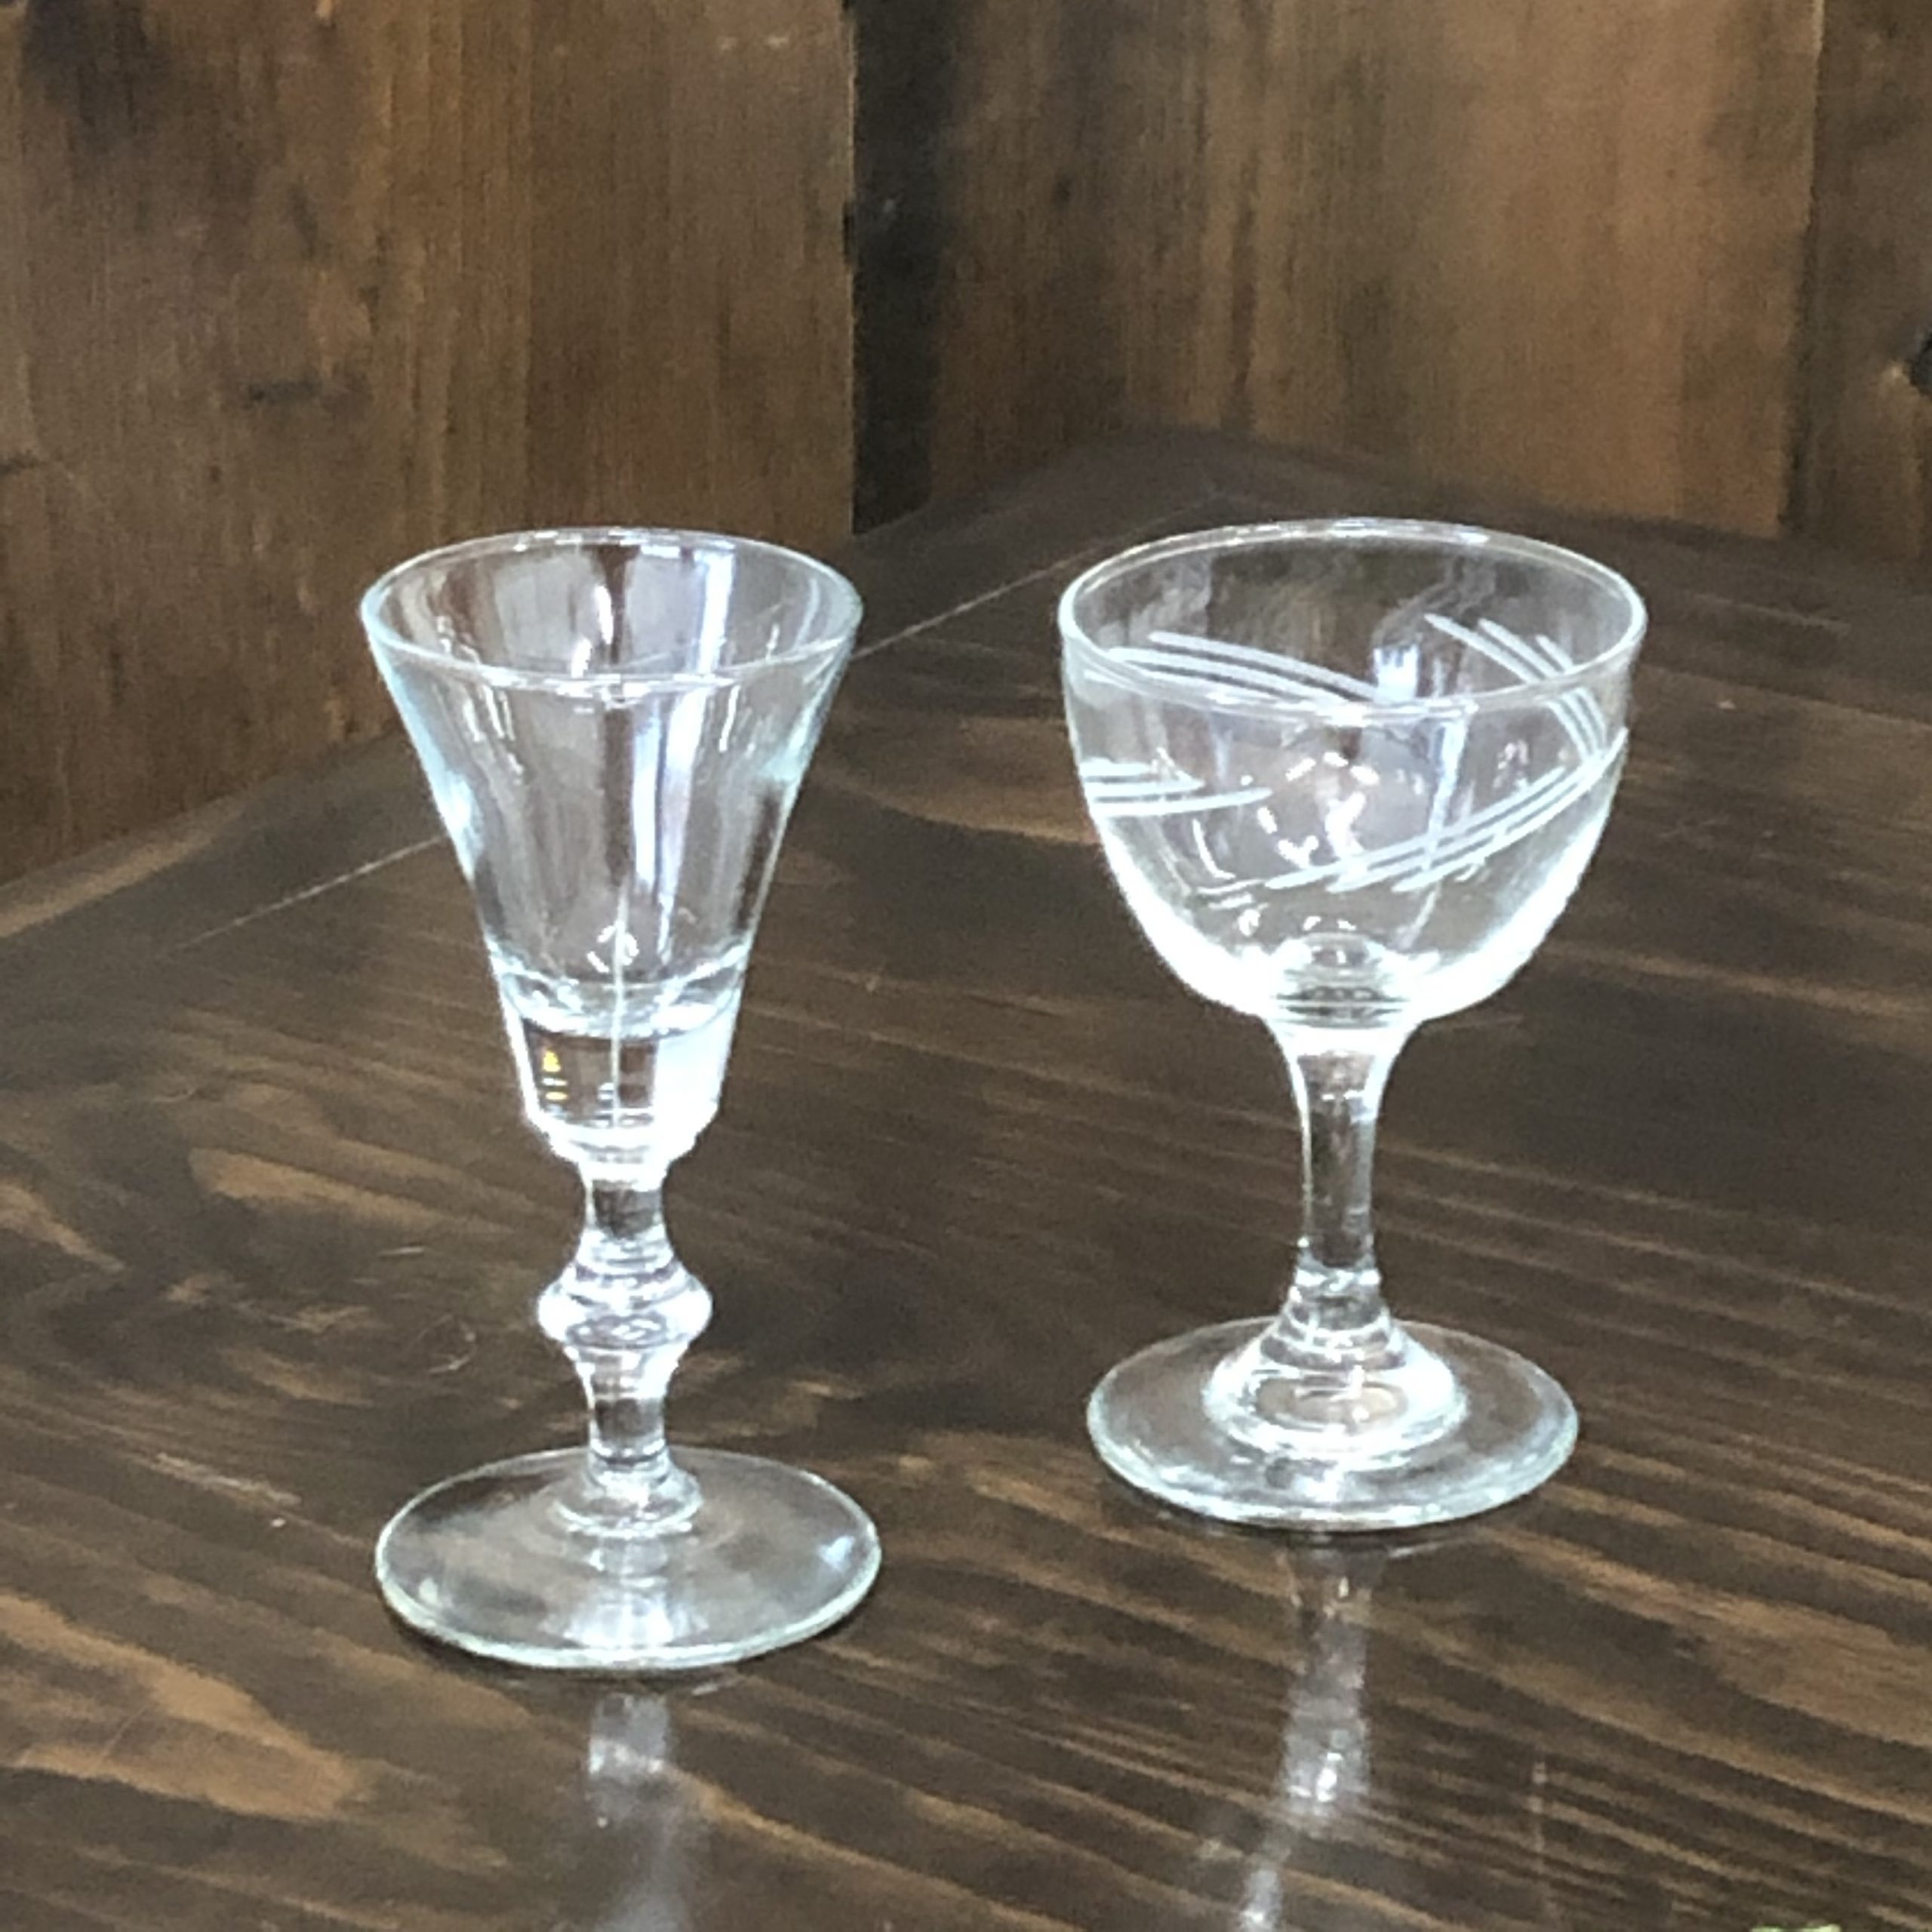 Sherry Glasses - 2, 3 or 4 oz Image